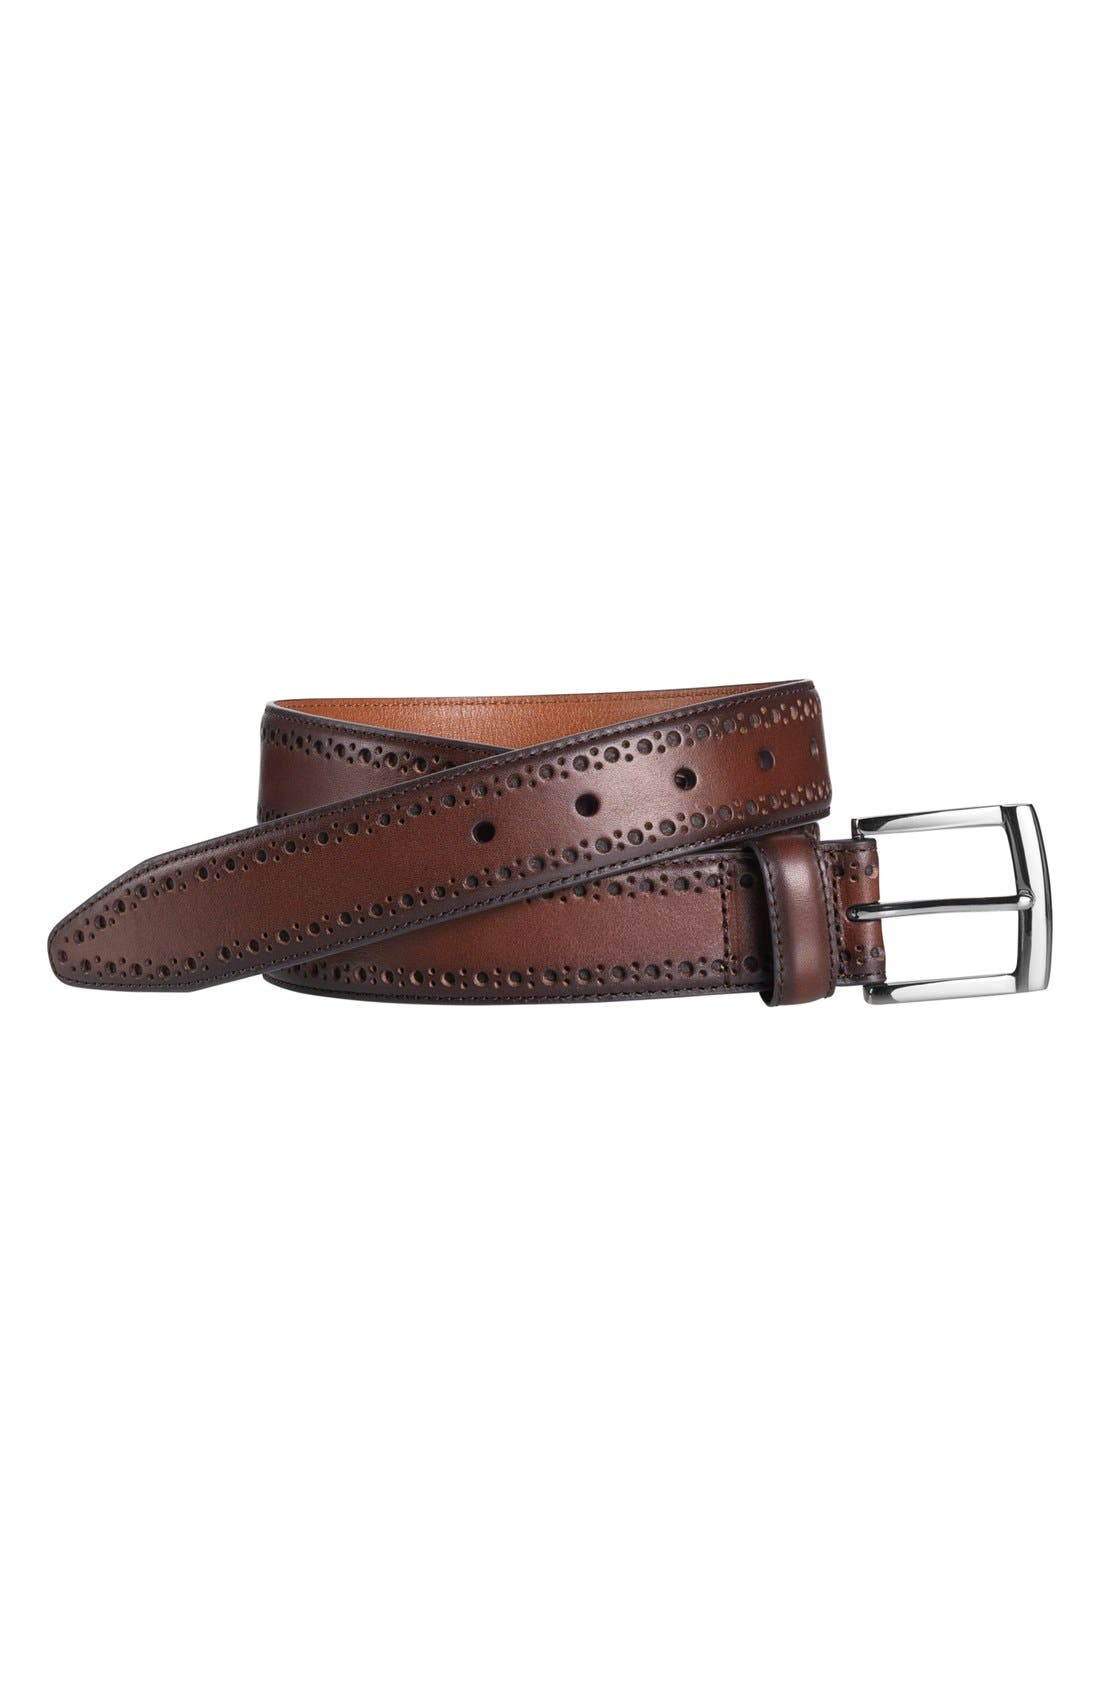 Perforated Leather Belt,                             Alternate thumbnail 2, color,                             MAHOGANY